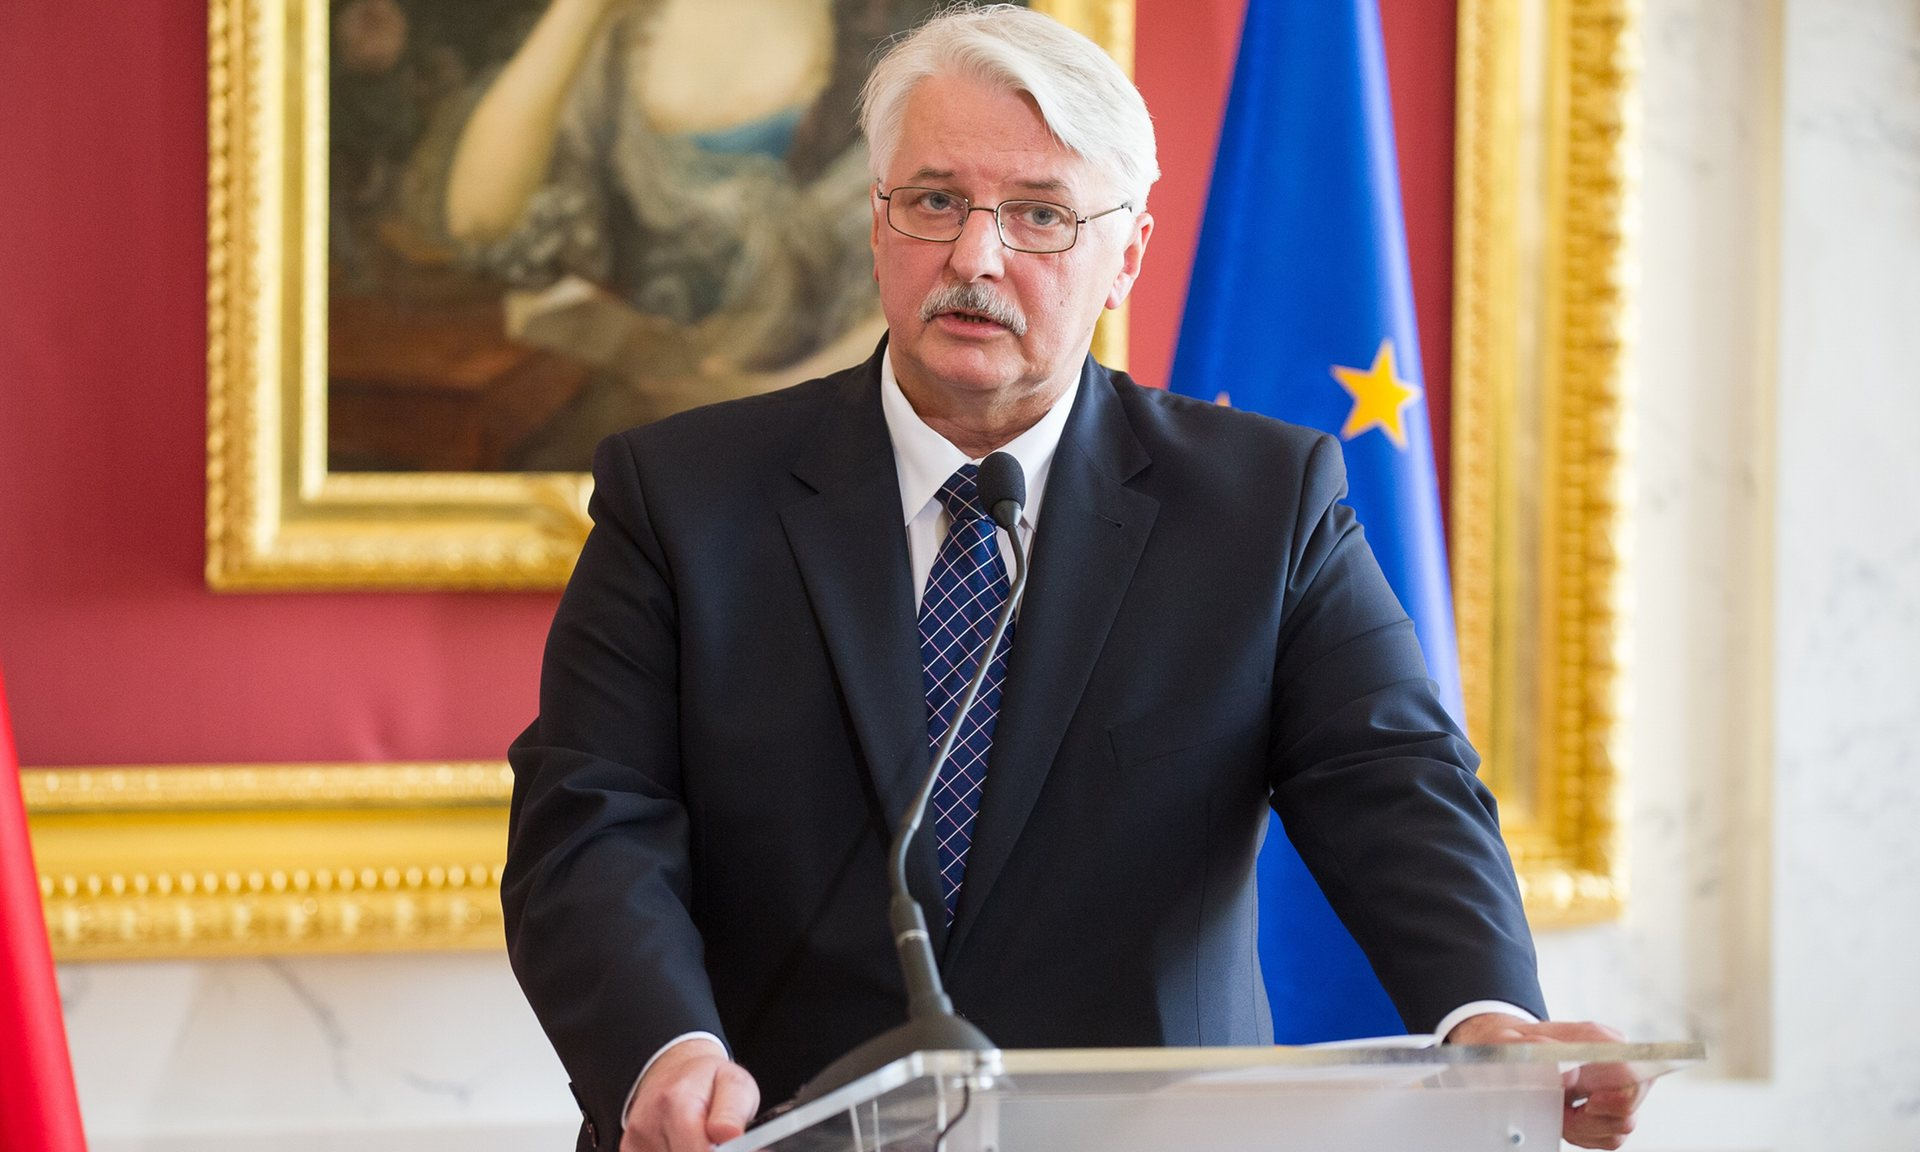 Witold Waszczykowski. Photograph: East News/REX/Shutterstock